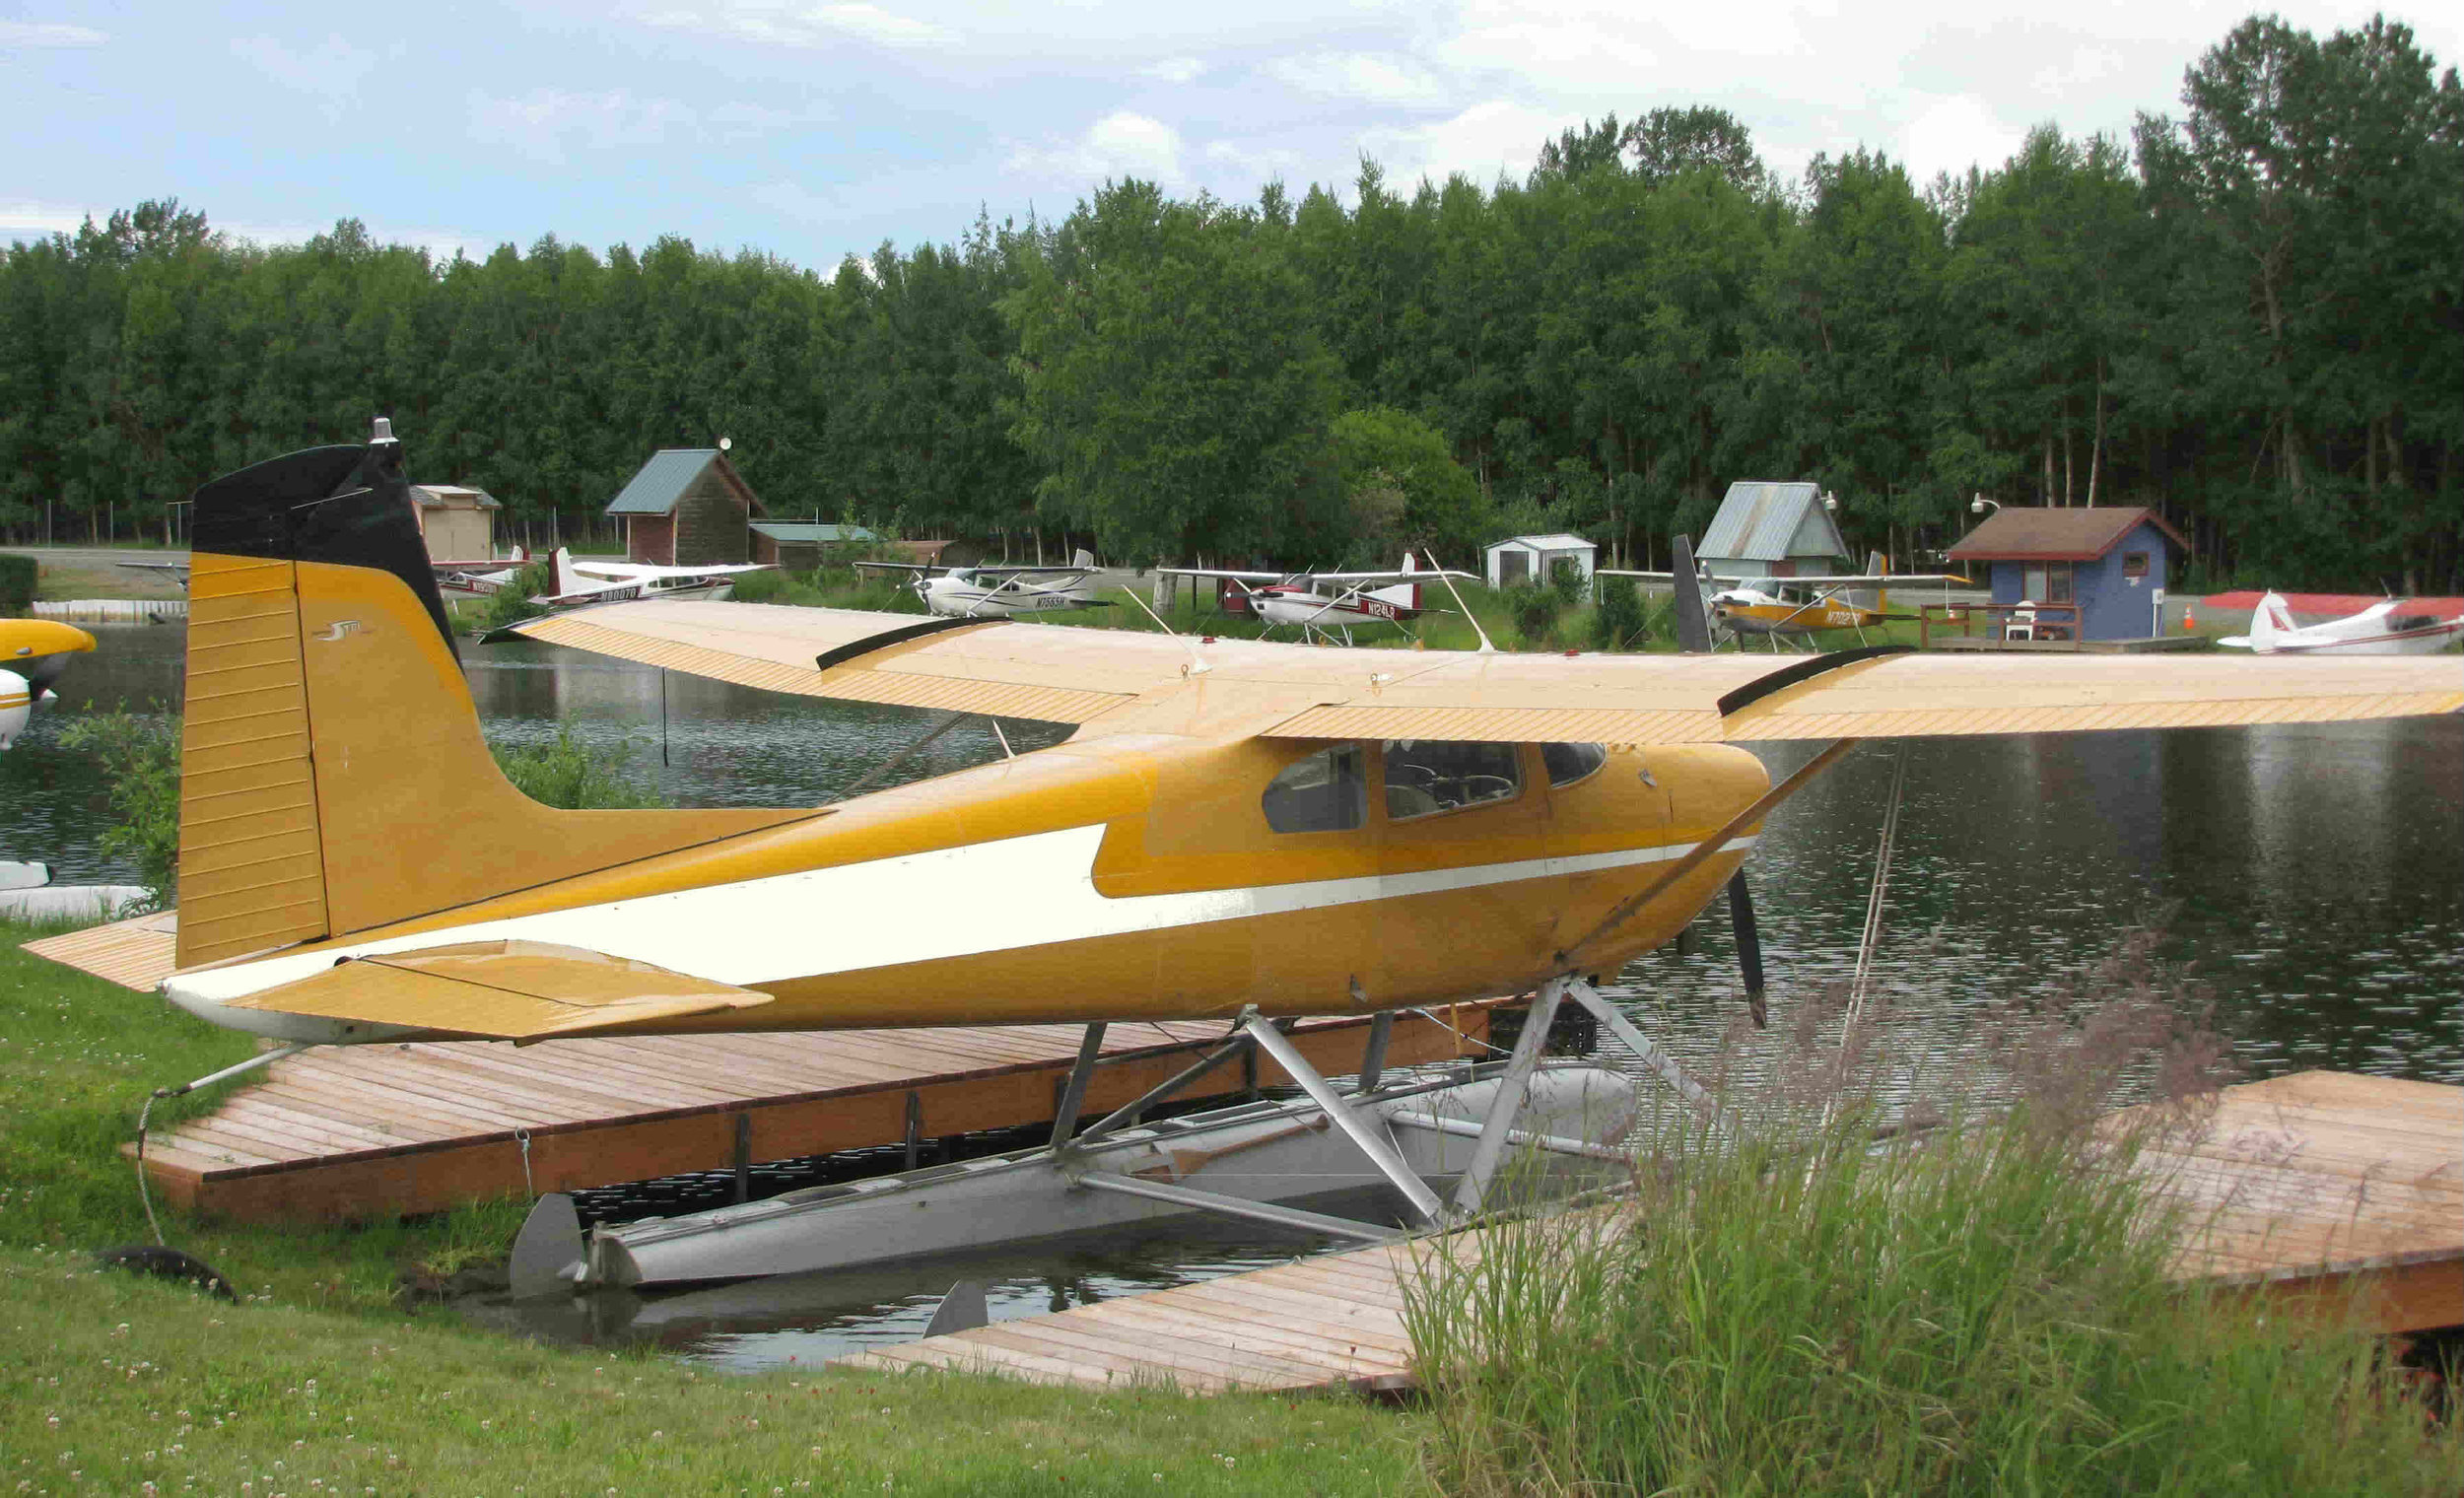 A Cessna 180 at Lake Hood Seaplane Base in Anchorage